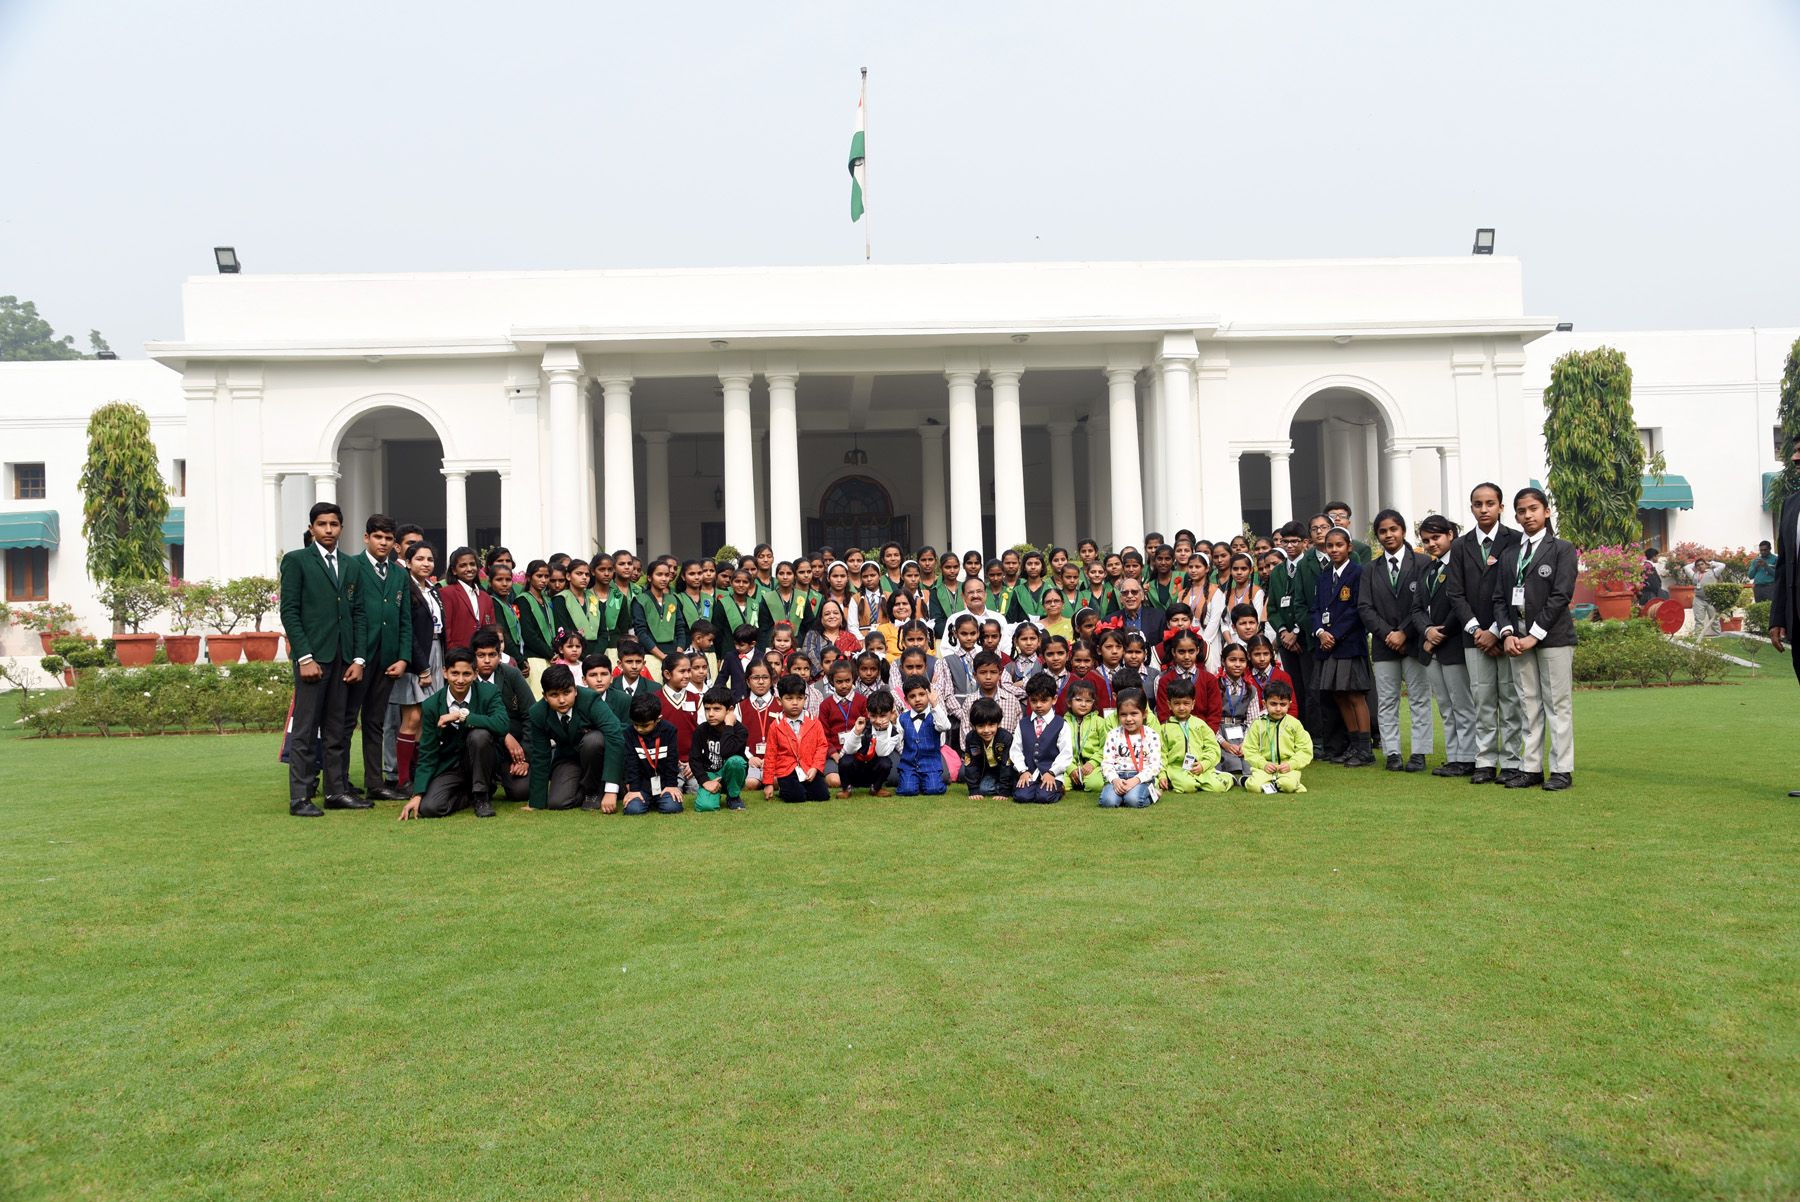 The Vice President, Shri M. Venkaiah Naidu with students from various school from across National Capital Region, Haryana, Uttar Pradesh and other Neighbouring states on the occasion of Children's Day, in New Delhi on 14 November, 2019.